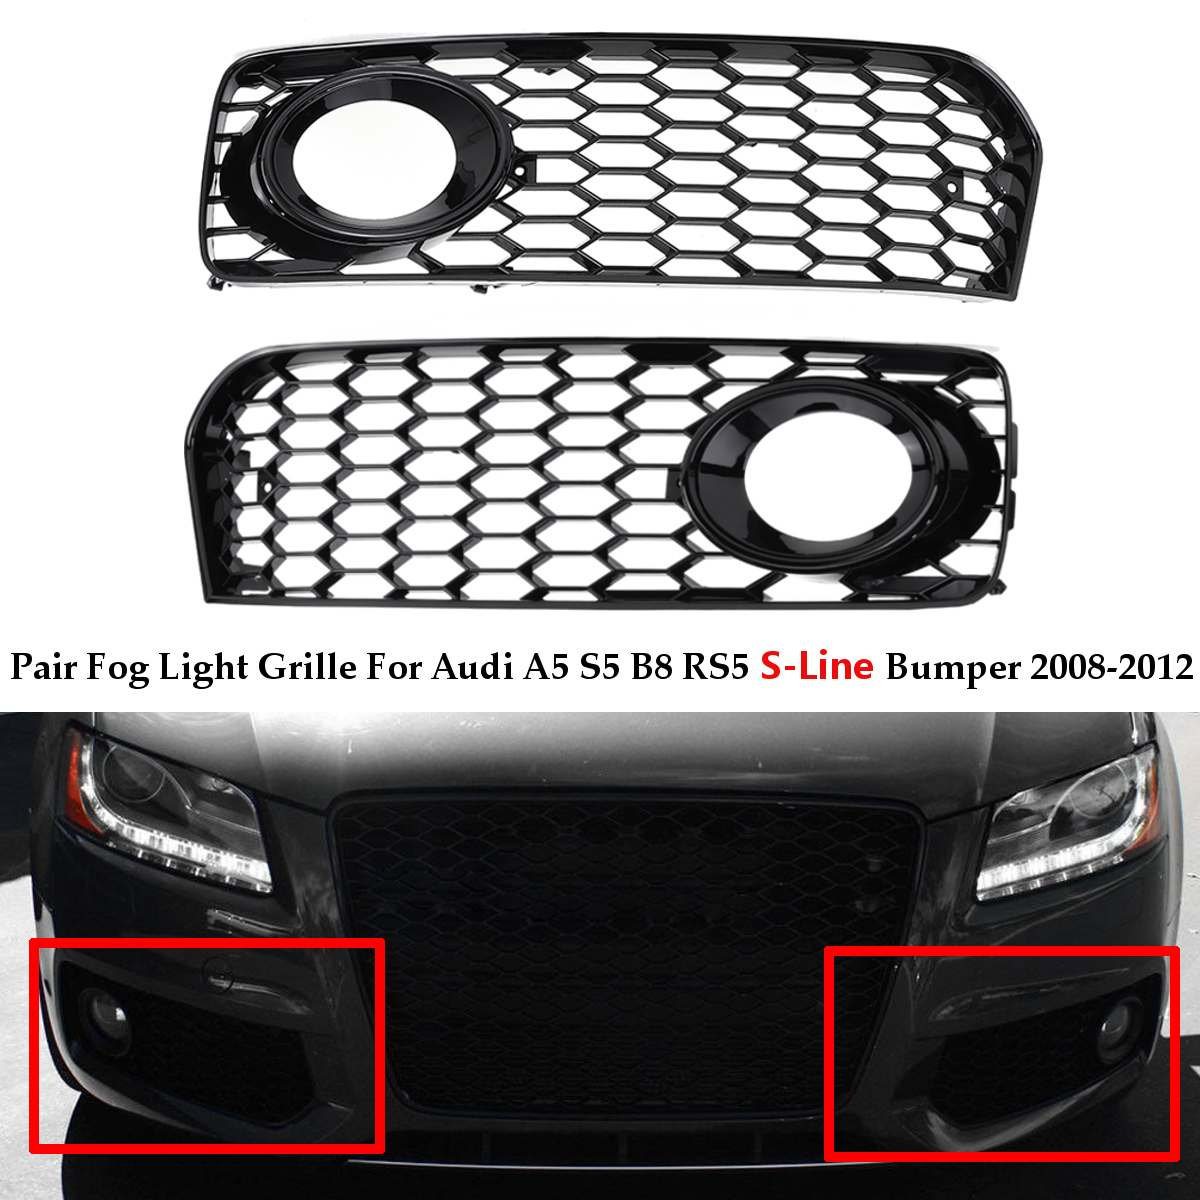 A Pair Car Fog Light Lamp Cover Honeycomb Mesh Hex Front Grille <font><b>Grill</b></font> For <font><b>Audi</b></font> <font><b>A5</b></font> S-Line / S5 B8 RS5 2008-2012 In Racing <font><b>Grills</b></font> image